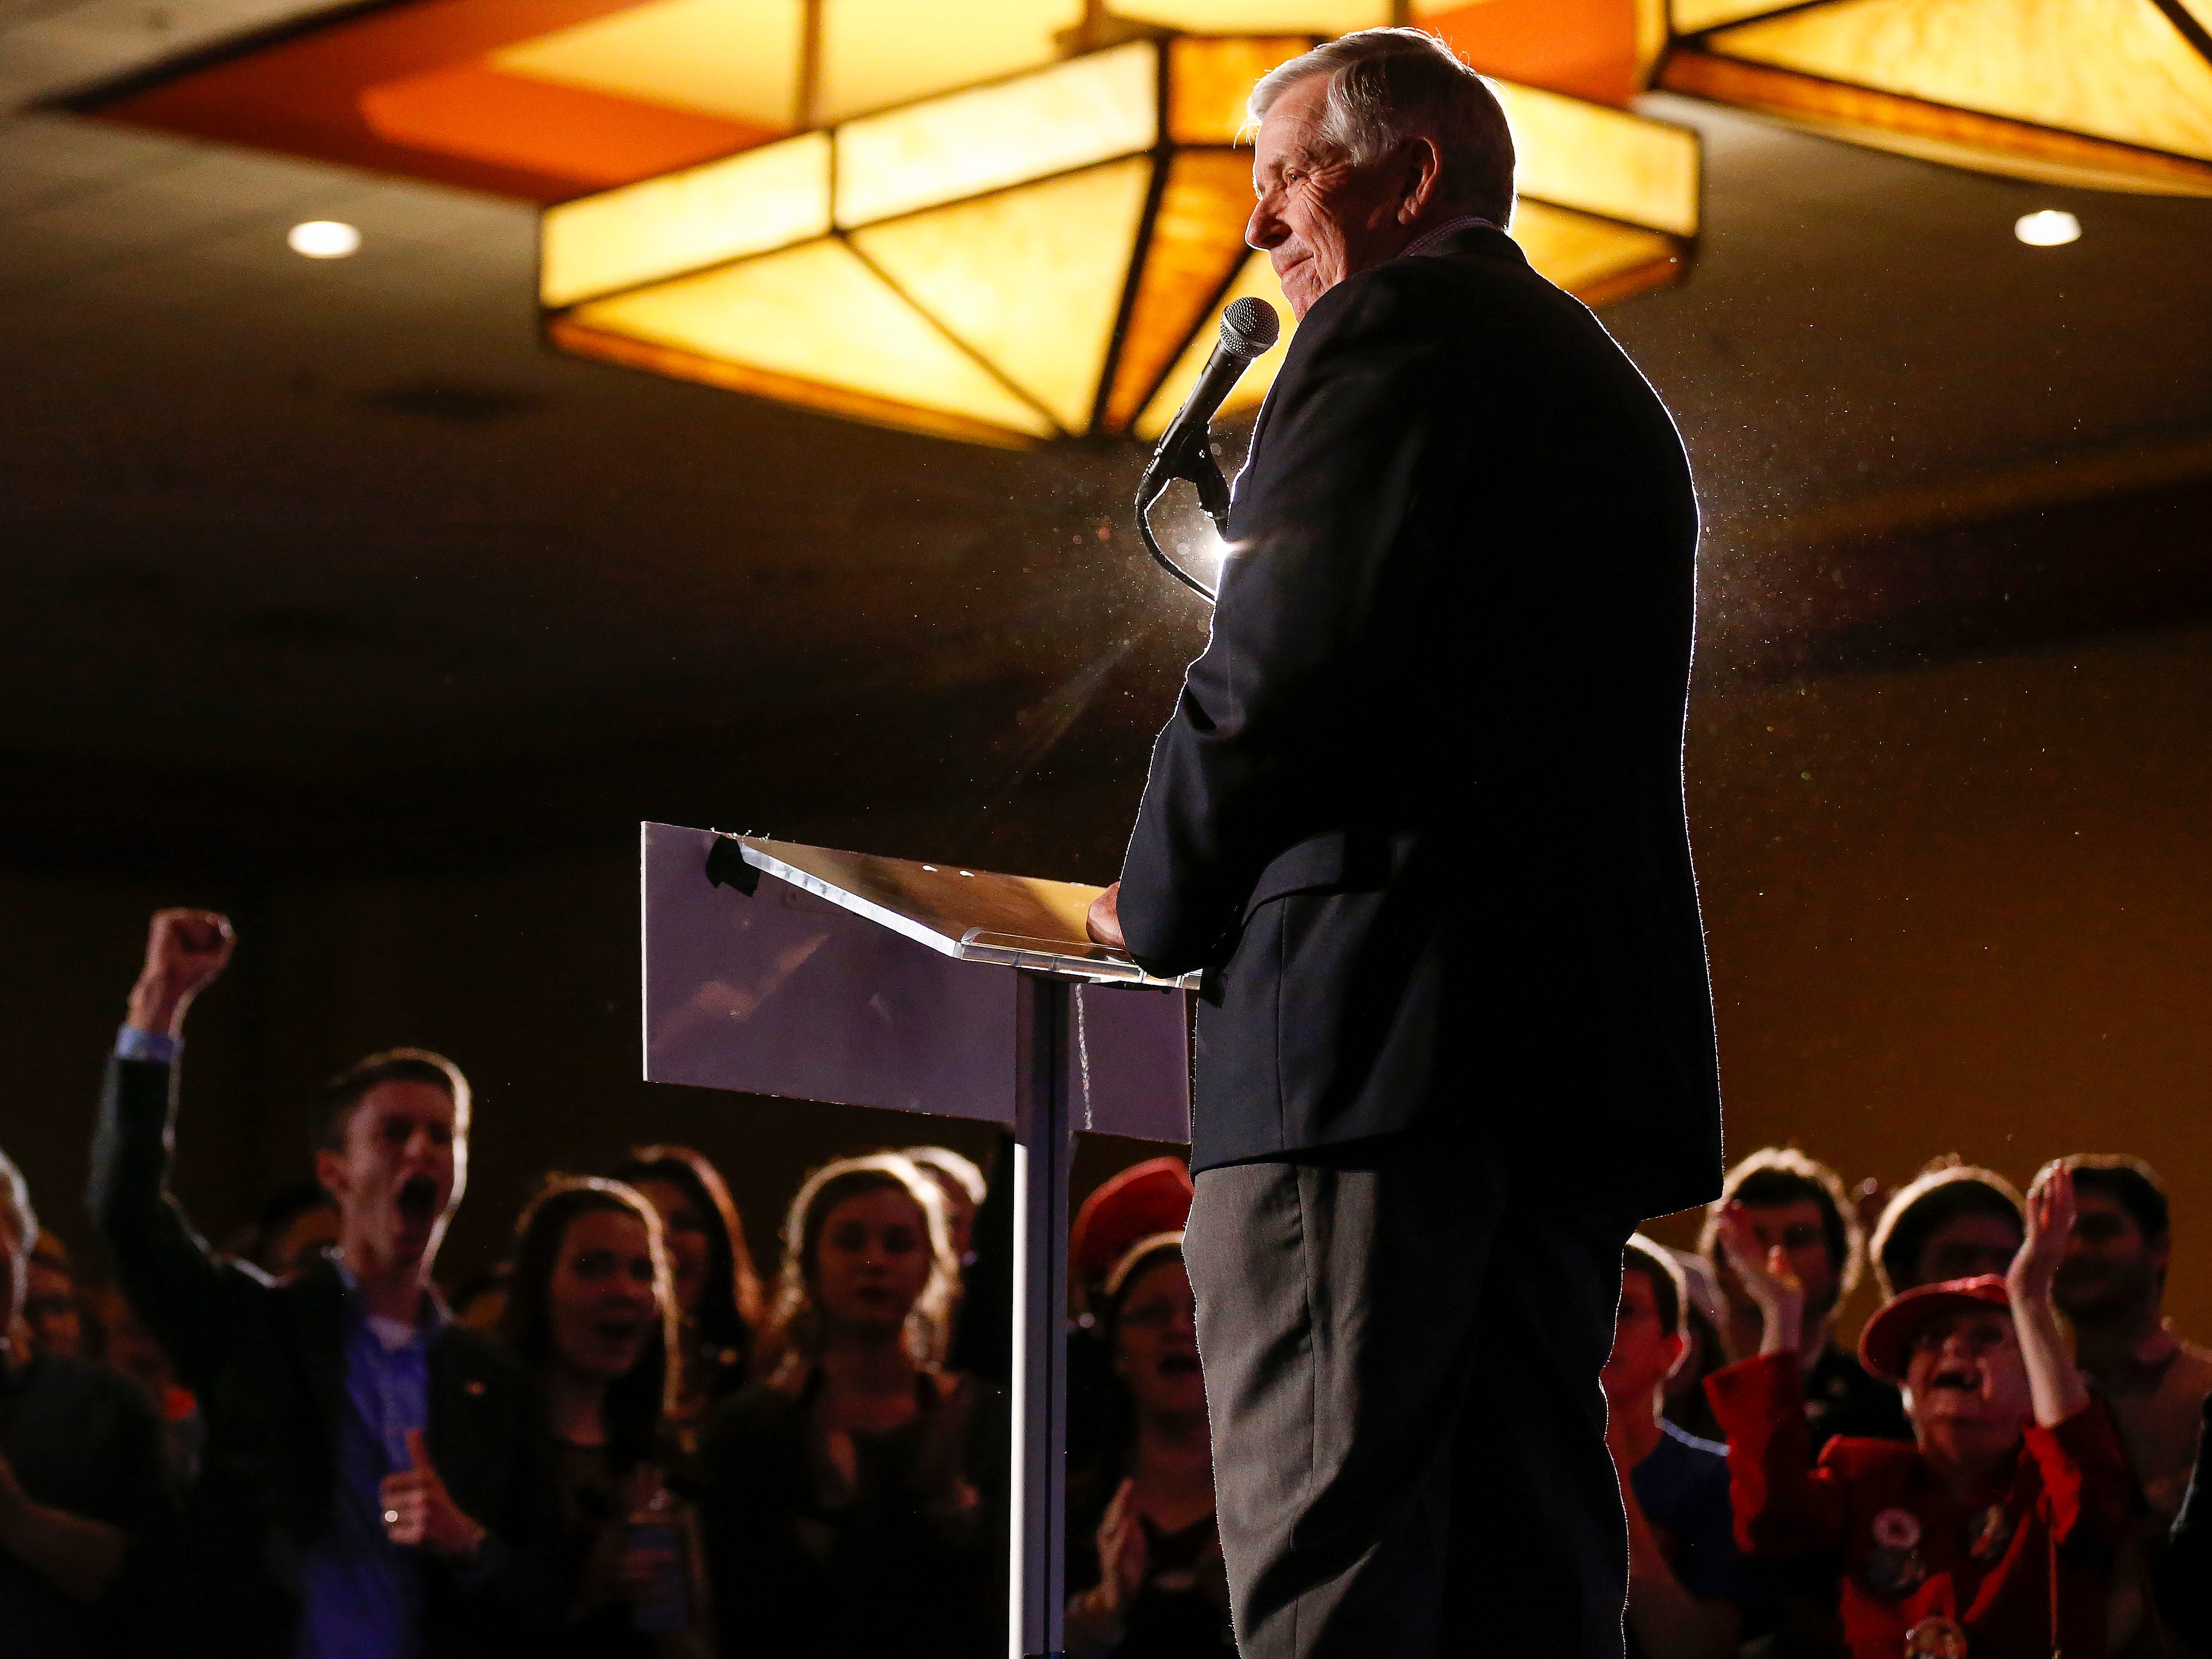 Gov. Mike Parson speaks during the Greene County Republican's watch party at the University Plaza hotel on Tuesday, Nov. 6, 2018.